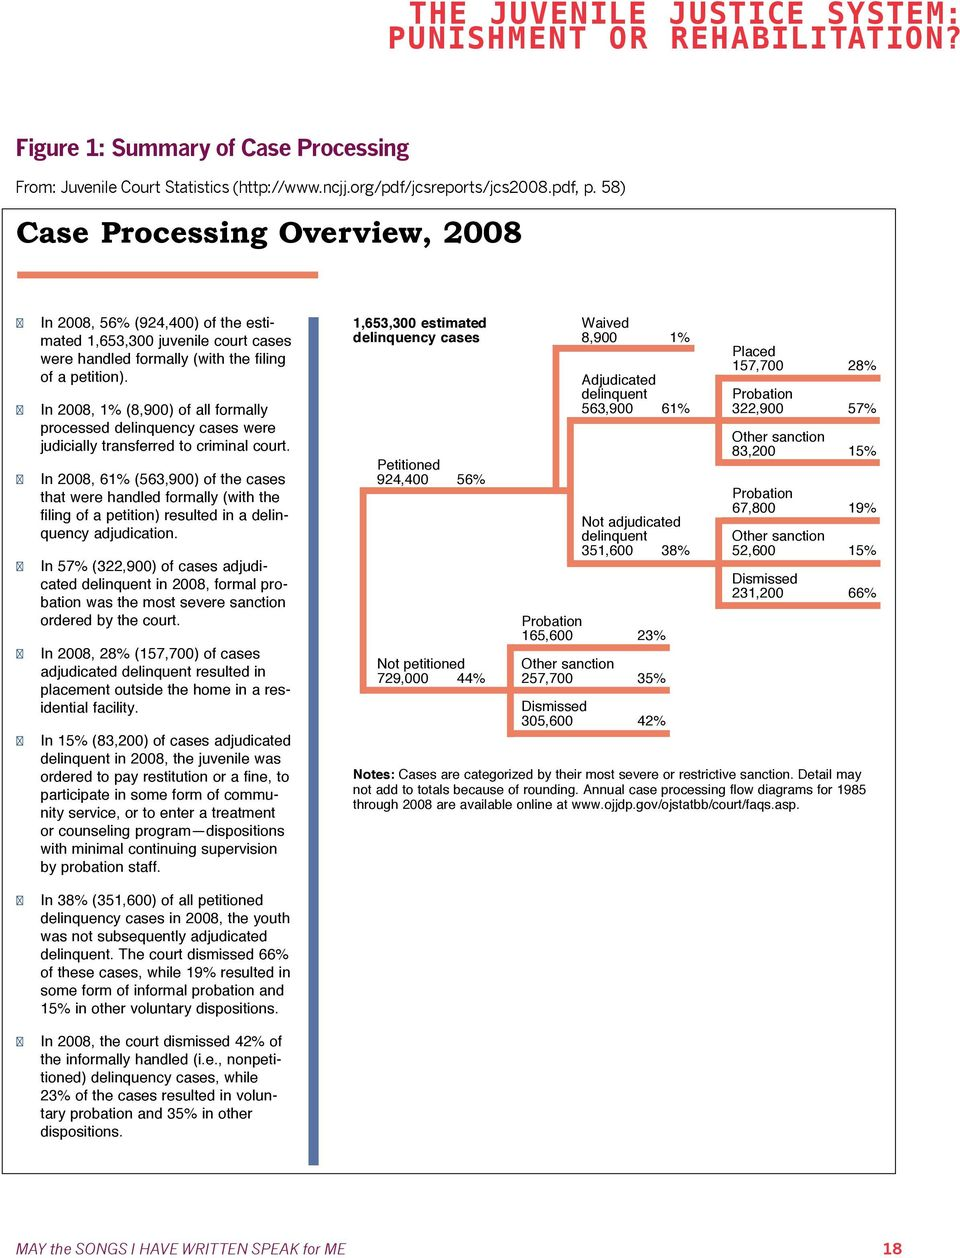 In 2008, 1% (8,900) of all formally processed delinquency cases were judicially transferred to criminal court.